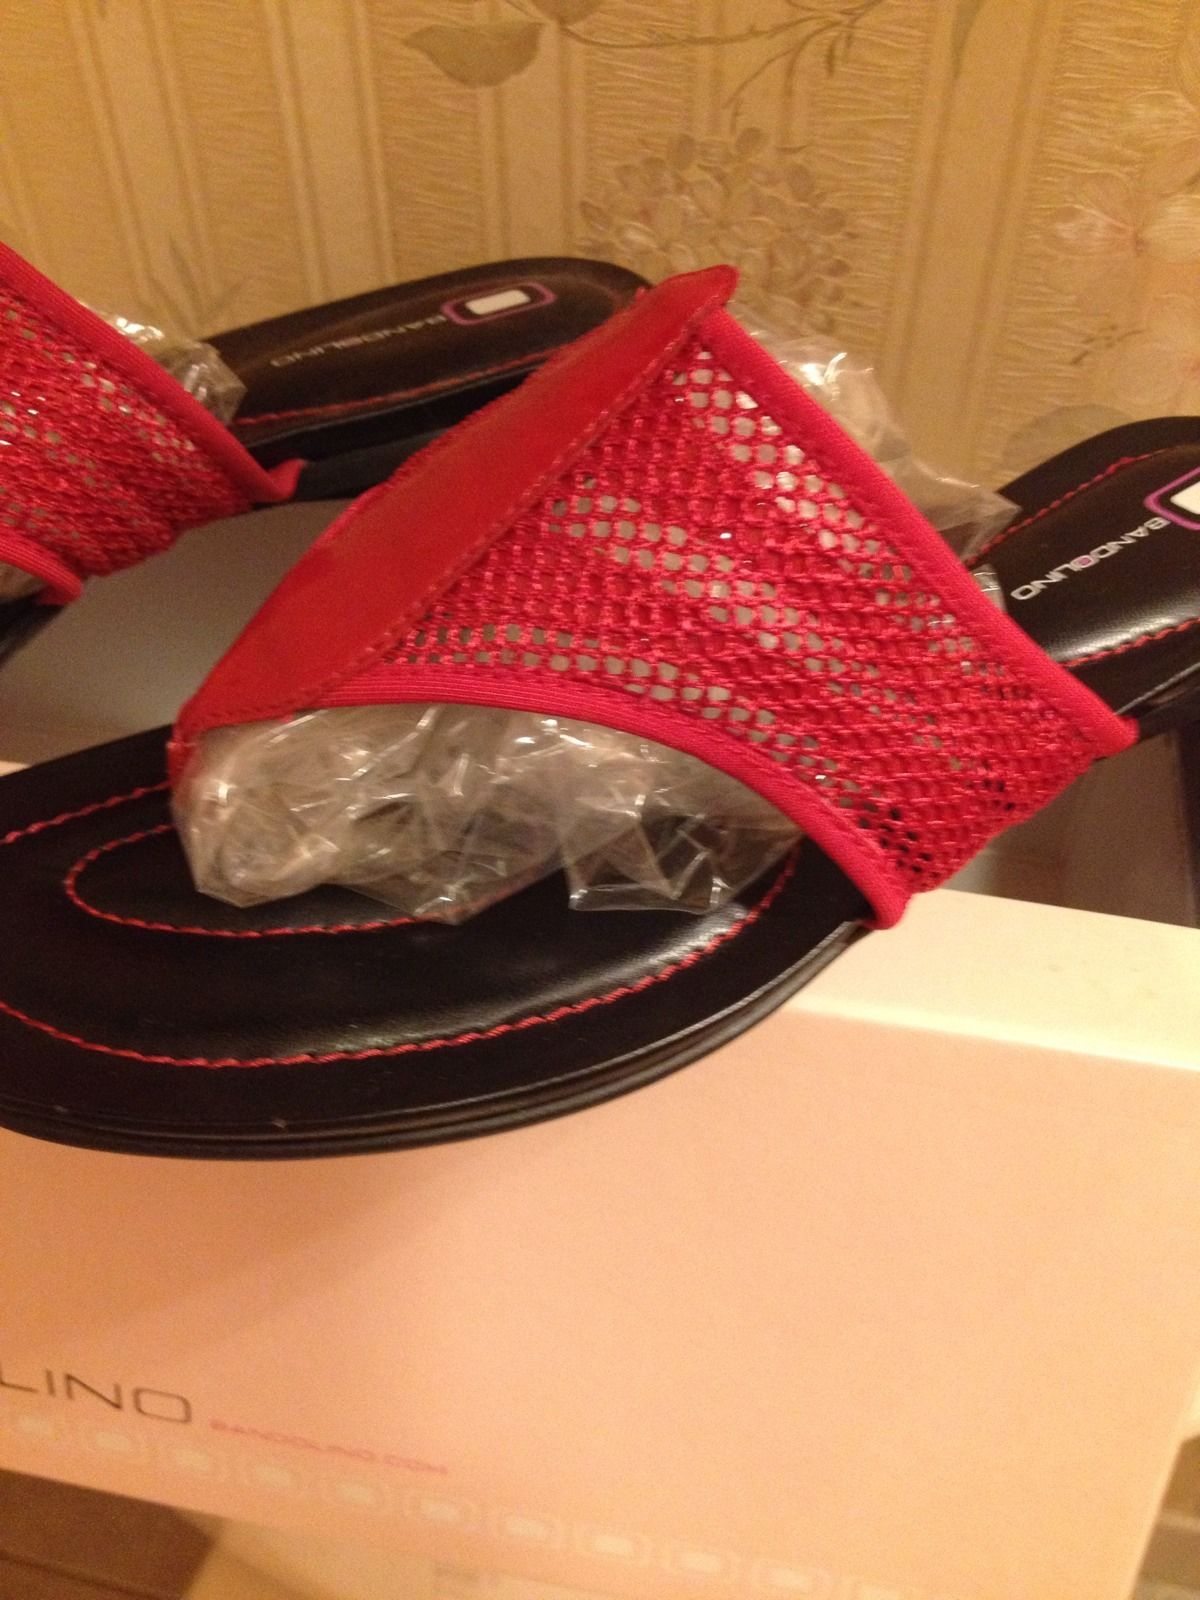 Bandolino Womens Red Mesh/Patent Leather Sandal Size 10M NIB BDCHIPPER Style